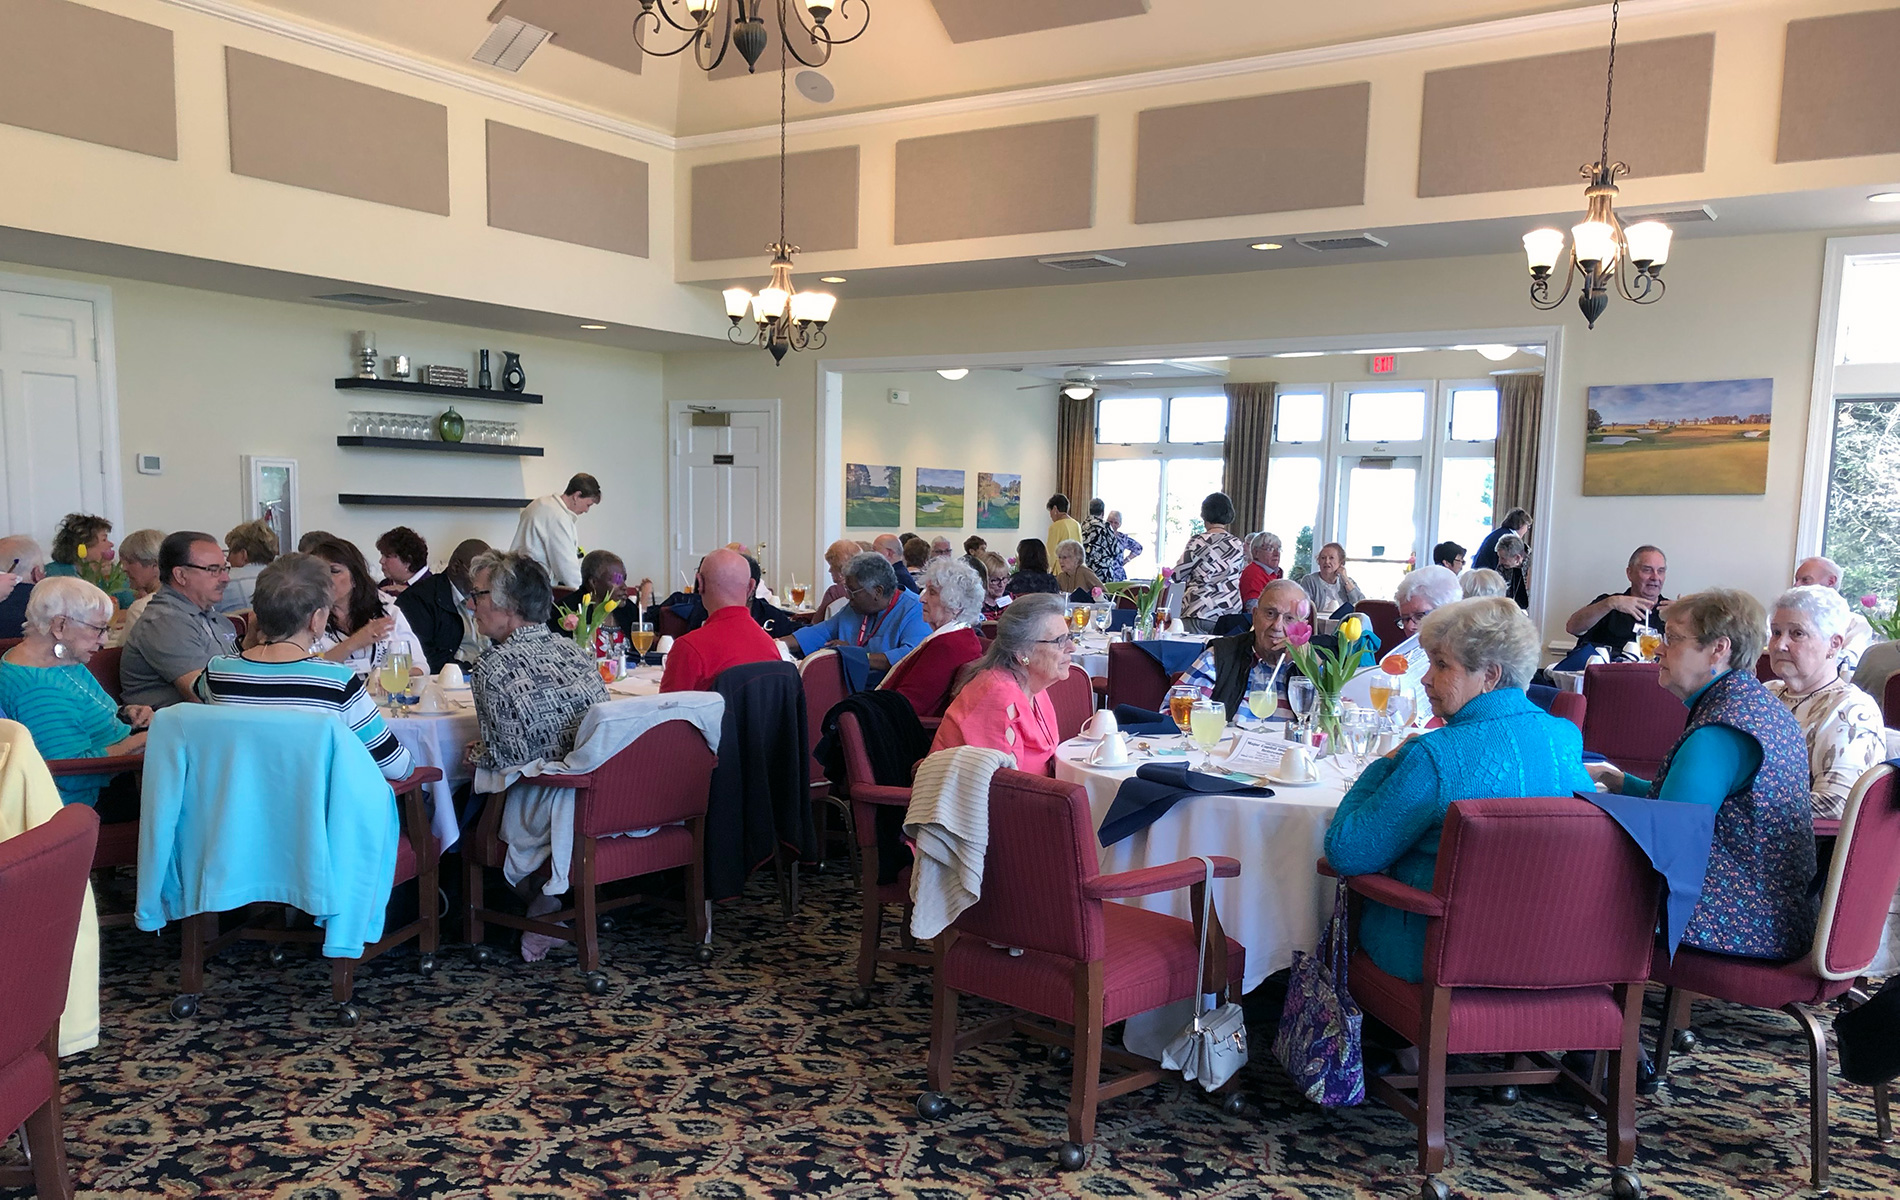 Members gather in the dining room for social hour prior to lunch.